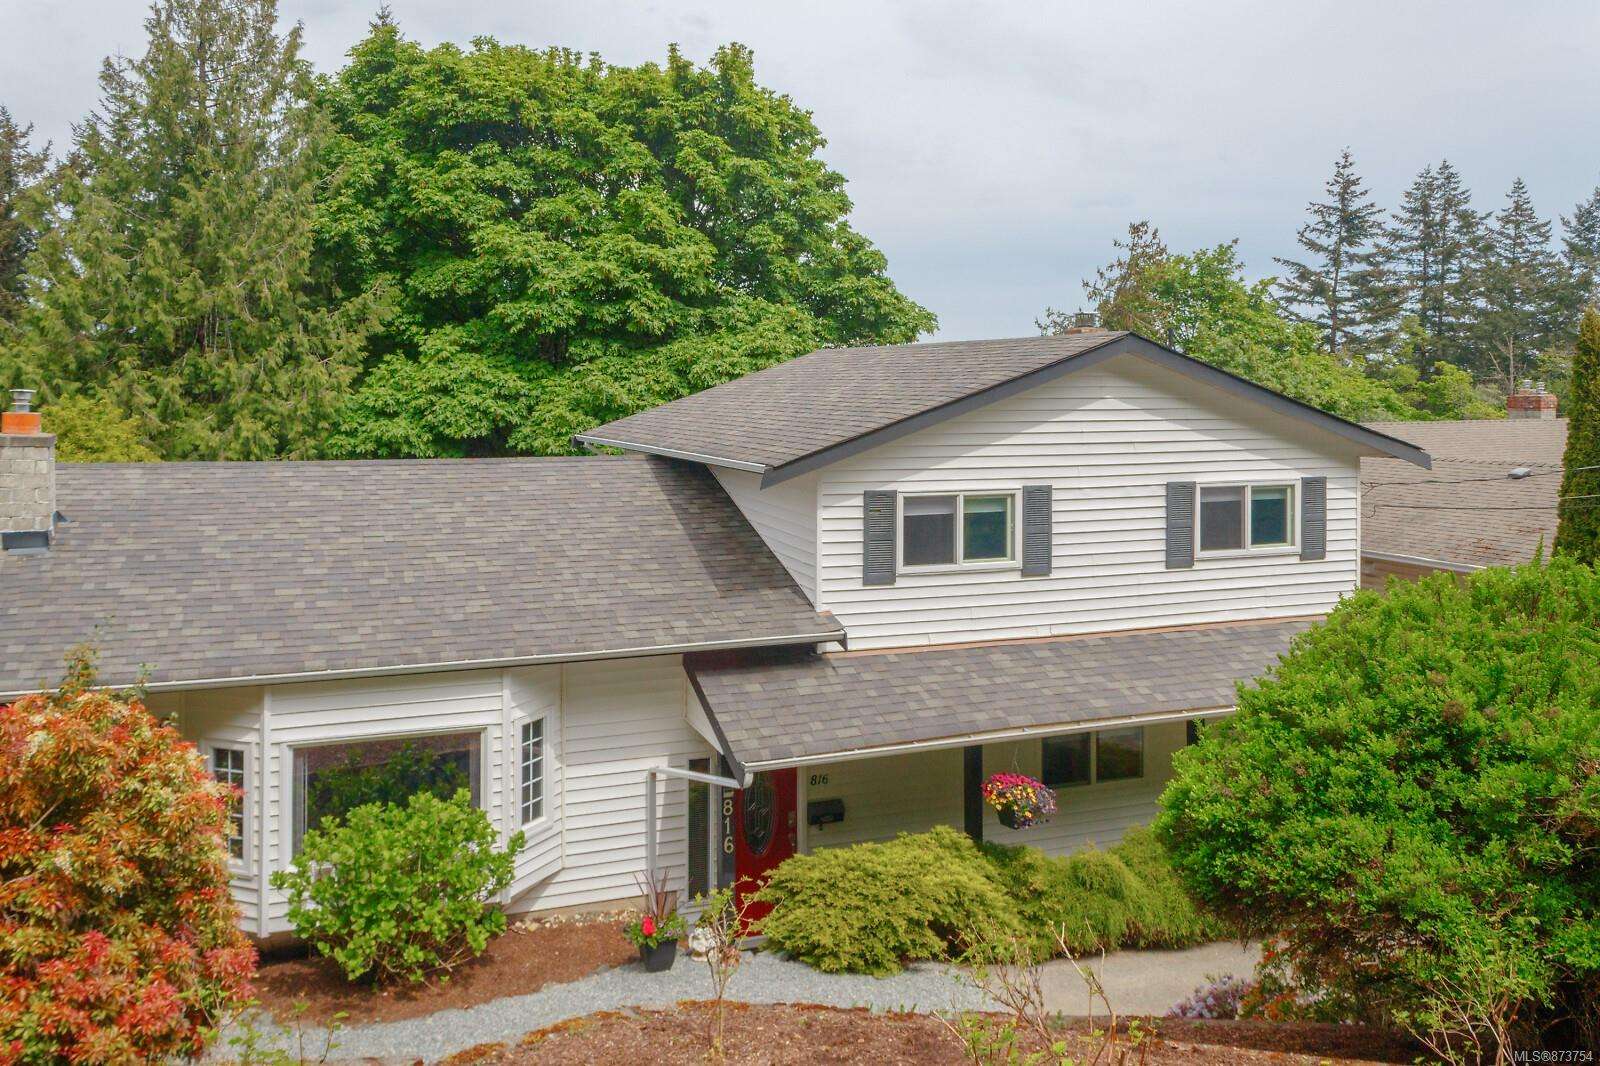 816 Drummond Way, Triangle, Colwood